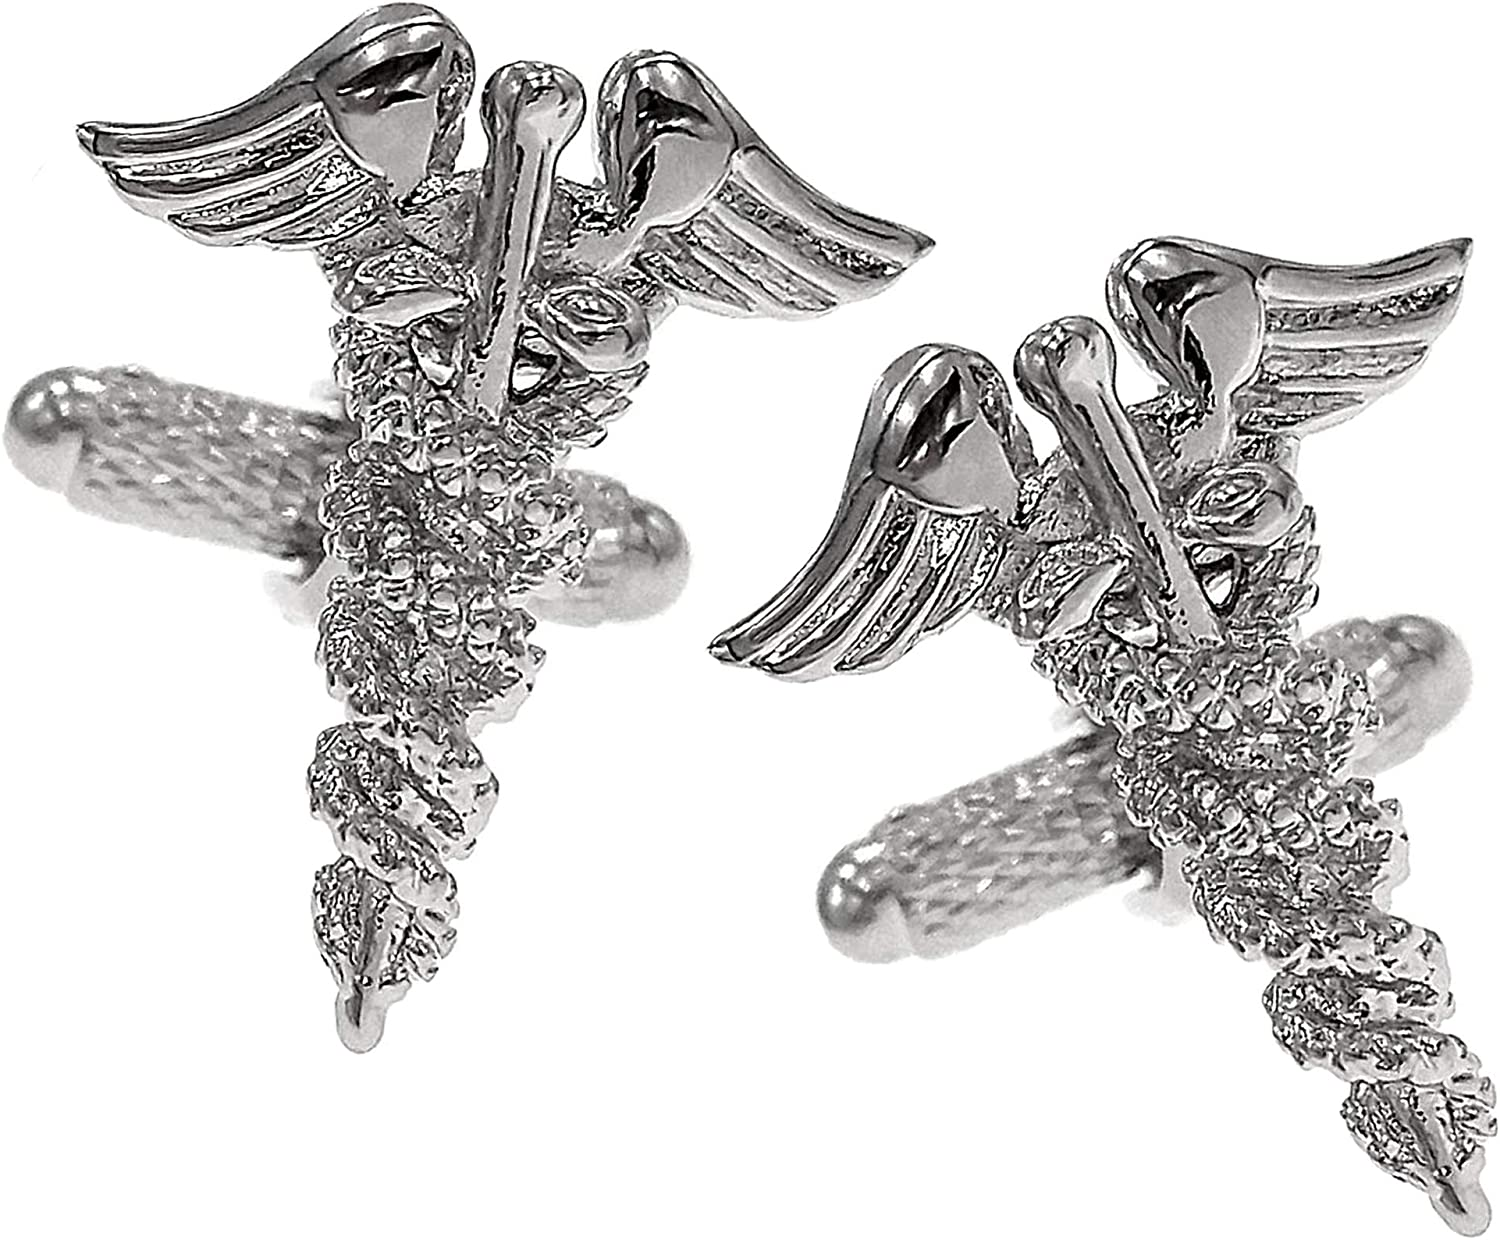 Thot Ra Caduceus Doctor Asclepius MD For Cufflinks Men Mod 897 A Ranking TOP4 Max 79% OFF